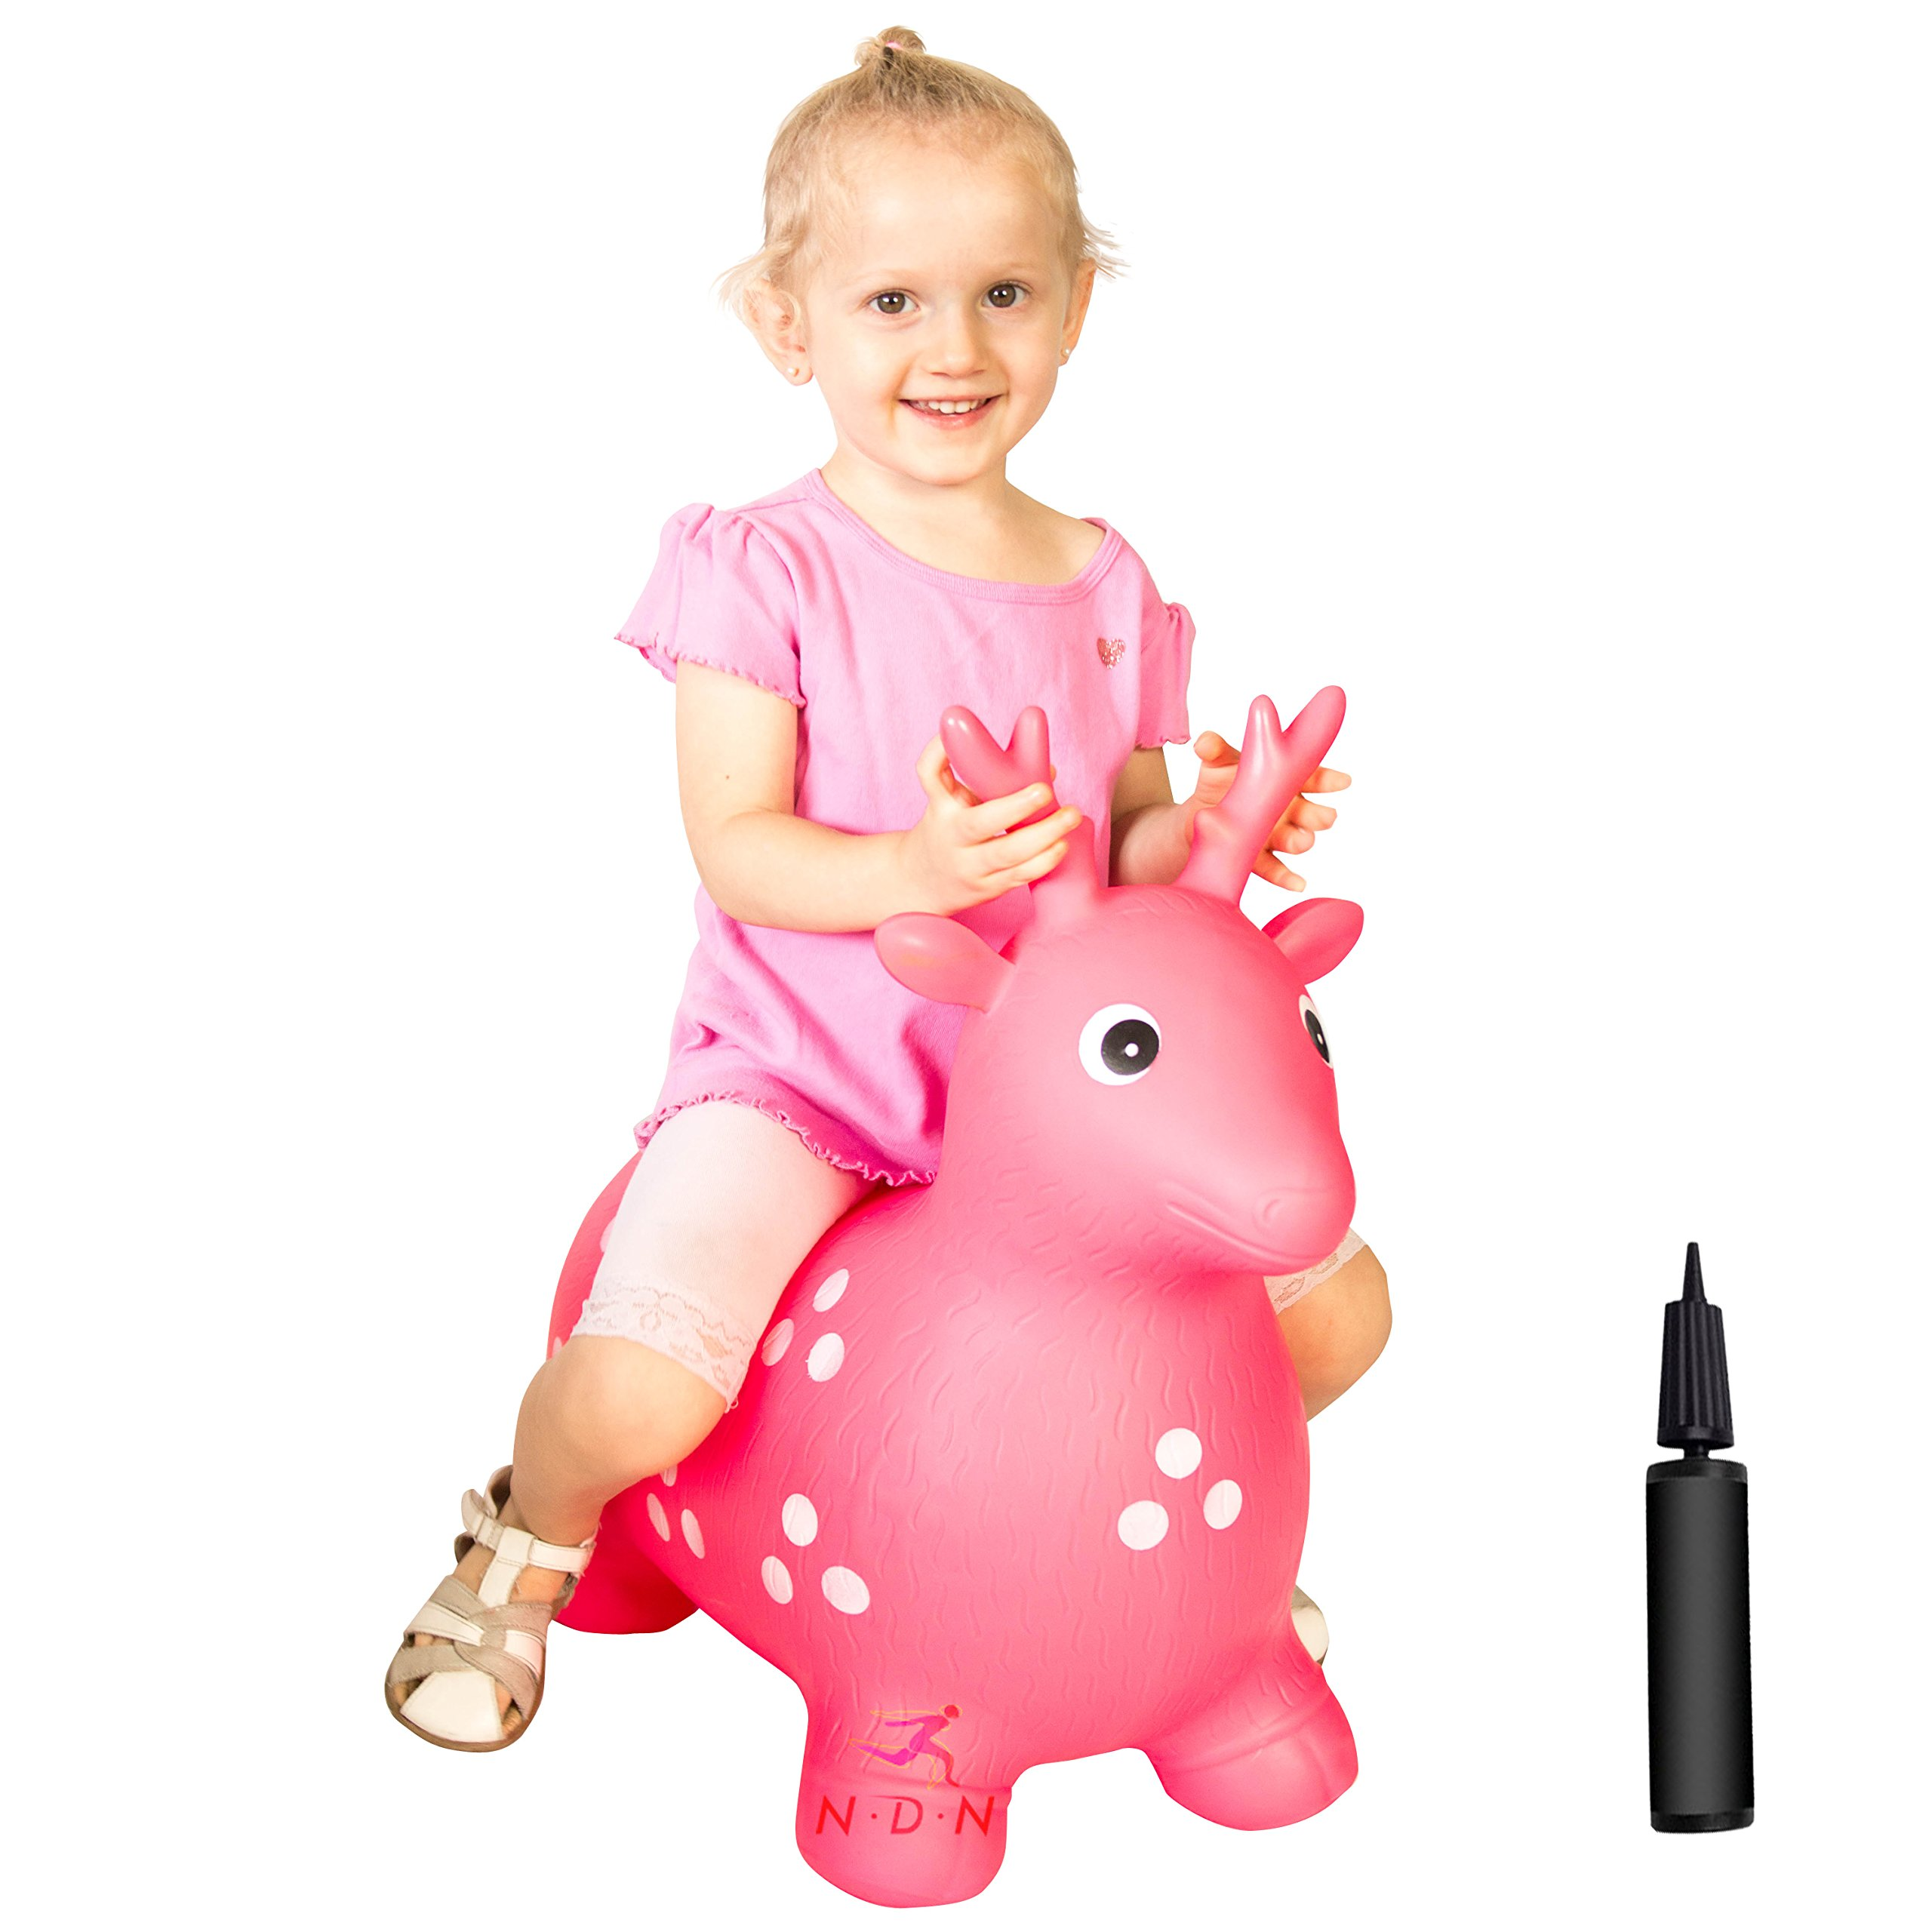 NDN LINE Bouncy Animal, Bouncy Horse Inflatable with Pump